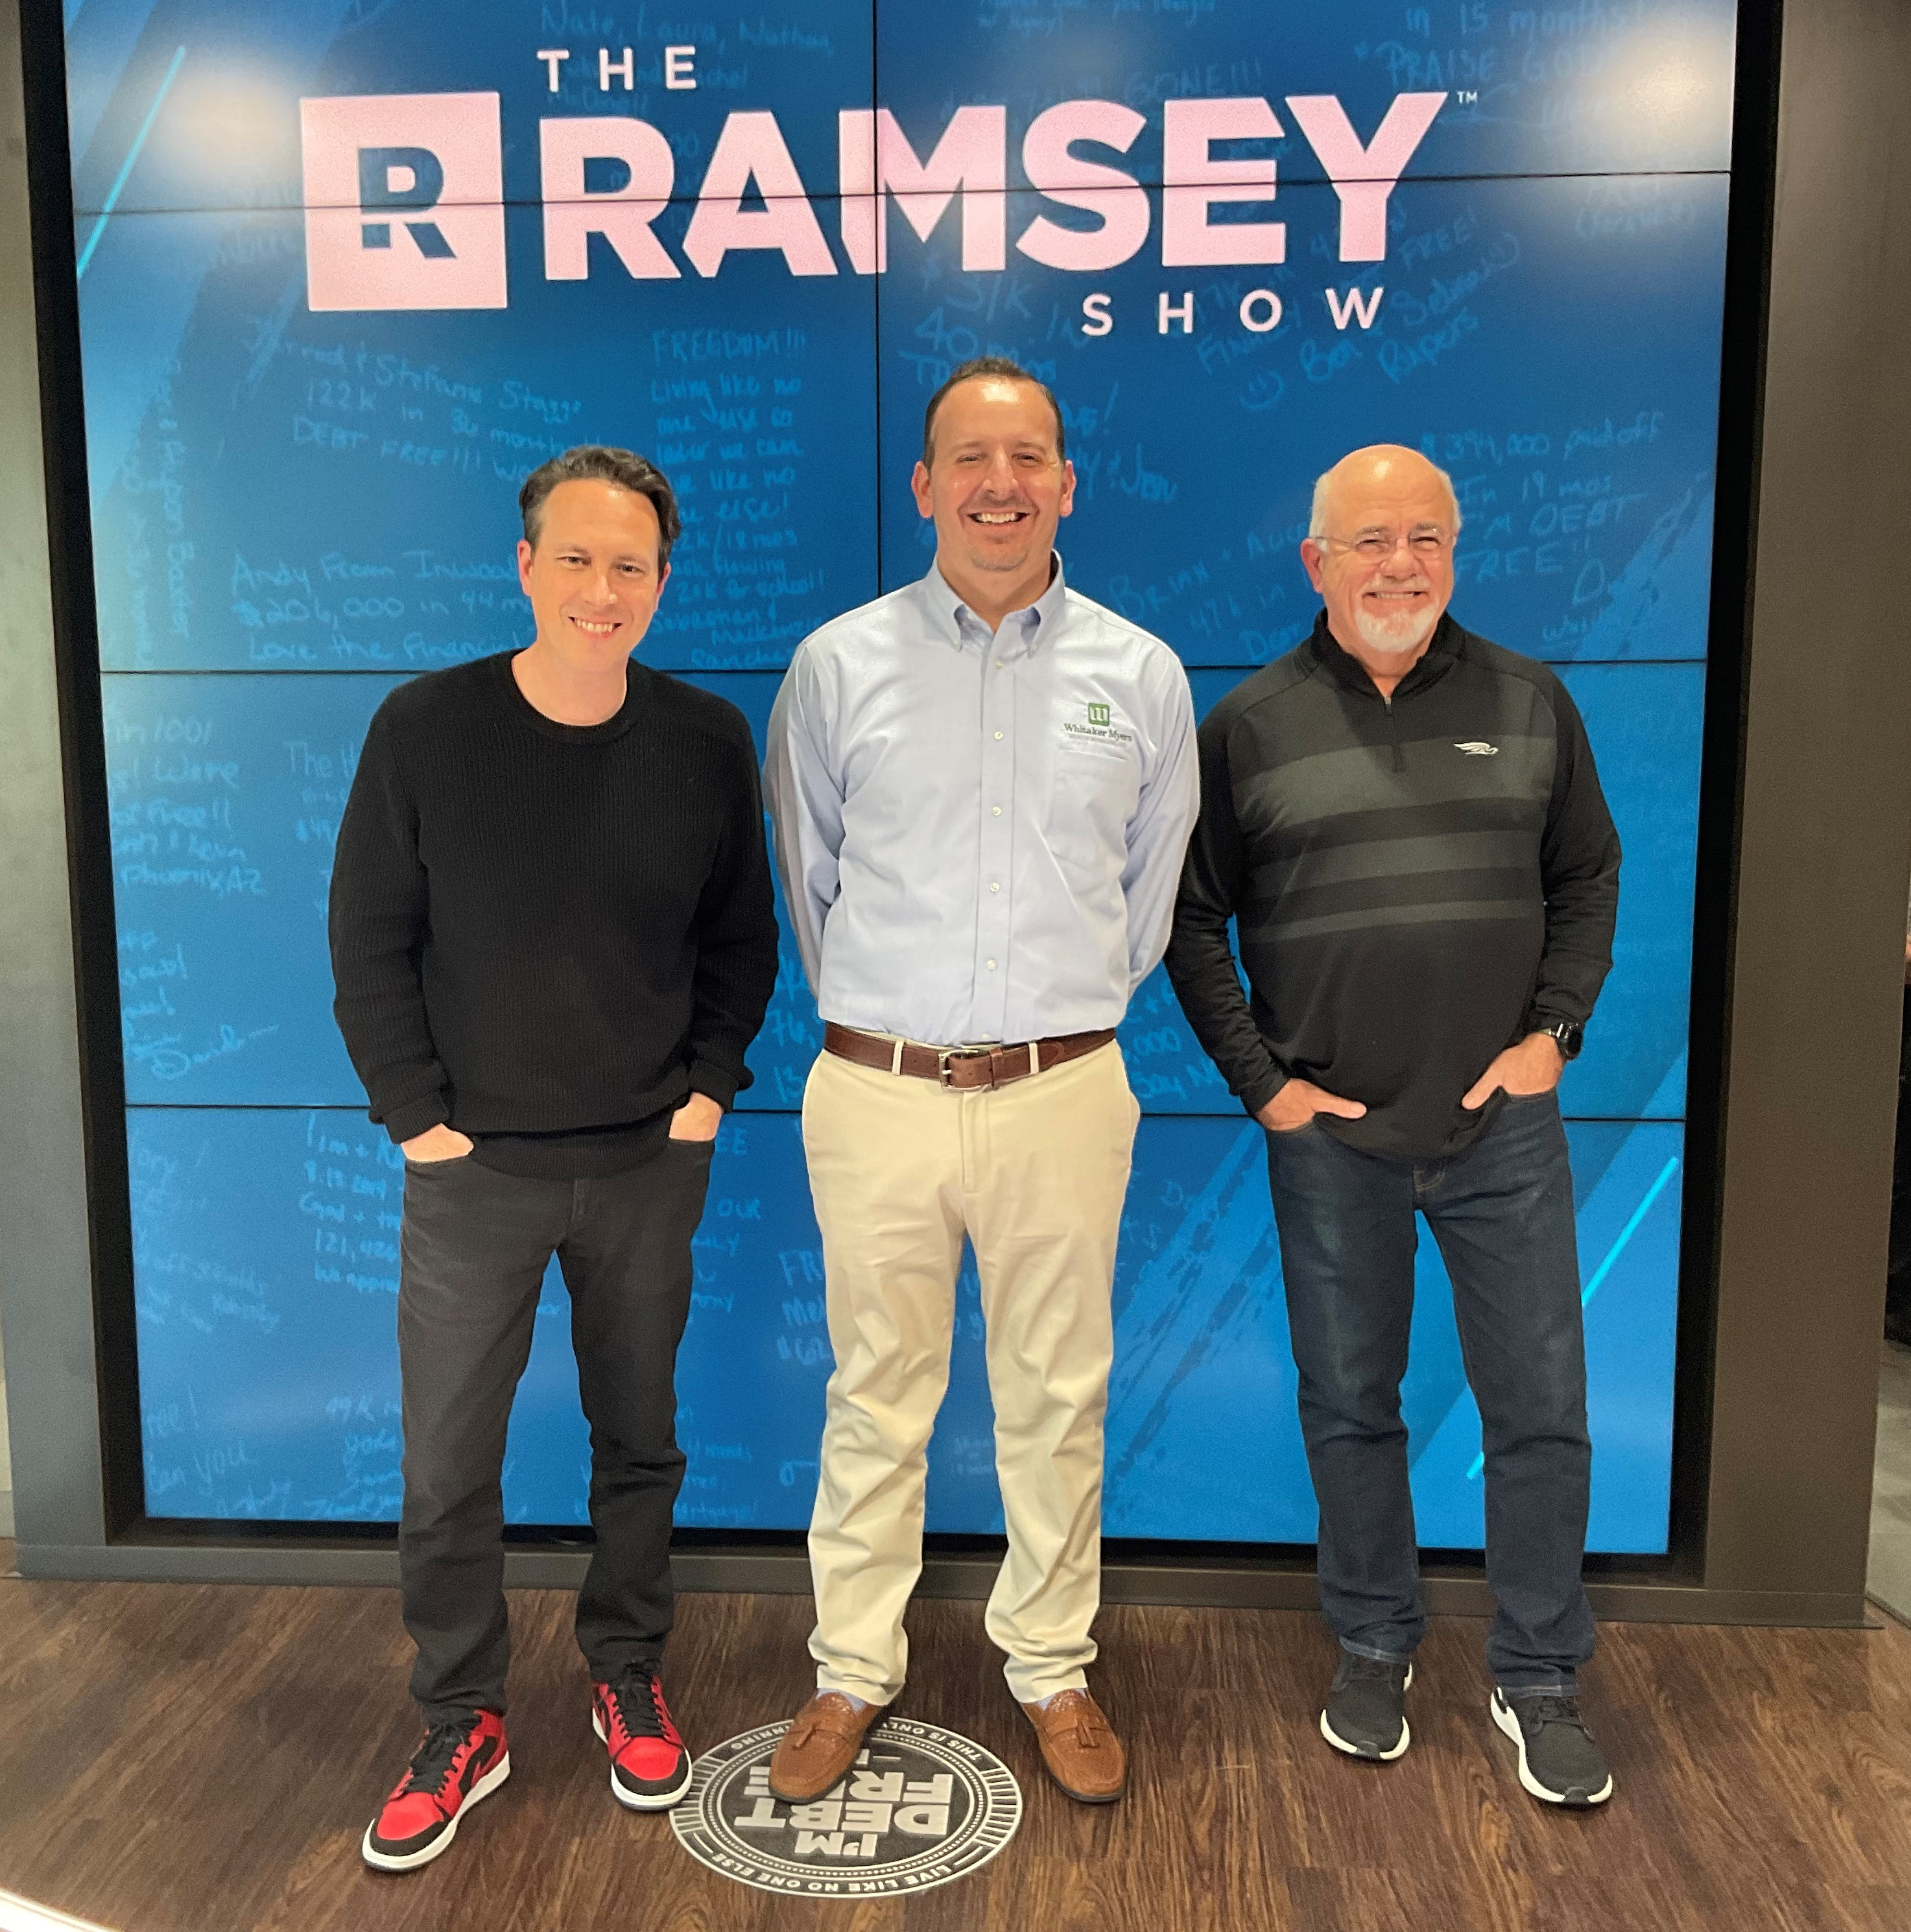 John-mark Young, financial advisor Dover OH